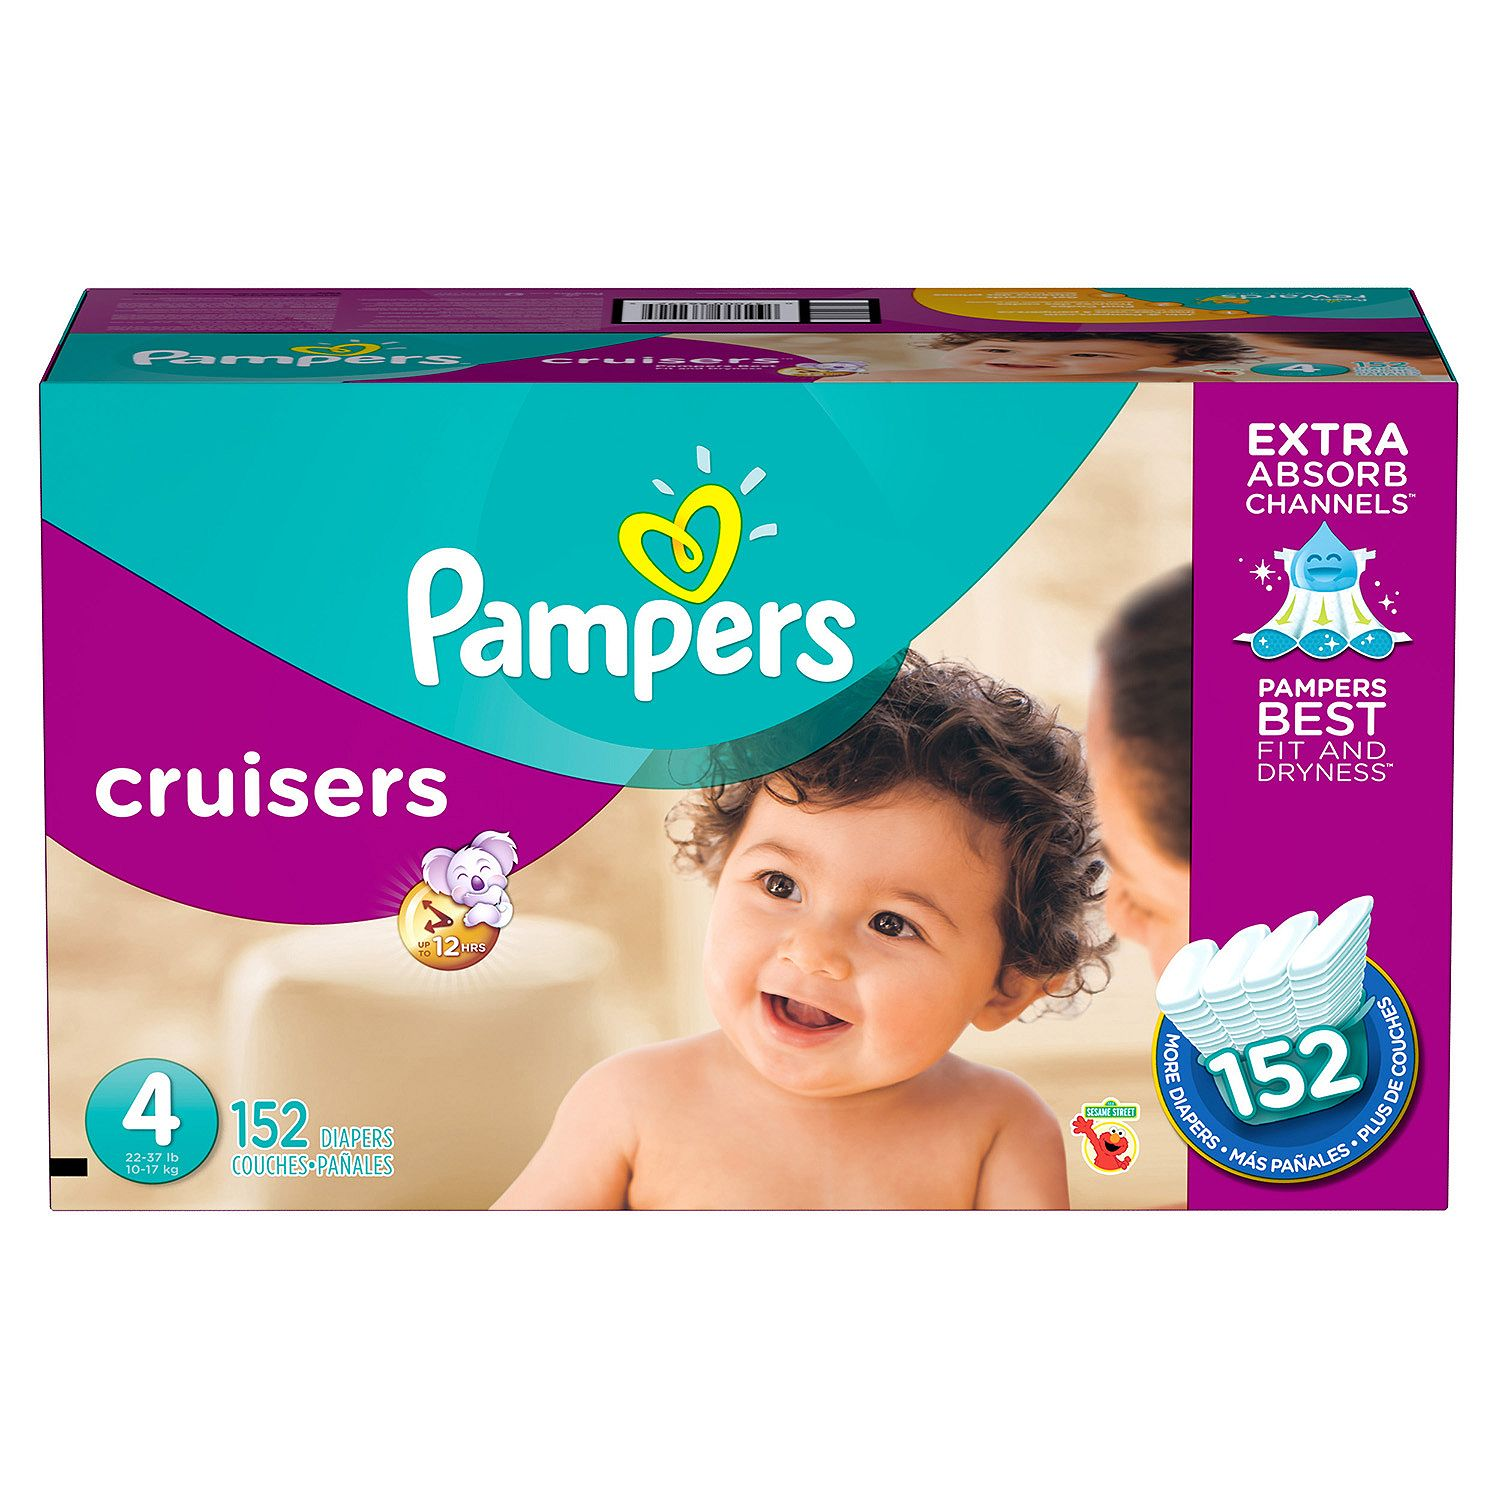 Pampers Cruisers Diapers Economy Pack - Diaper Size 4 - 1...